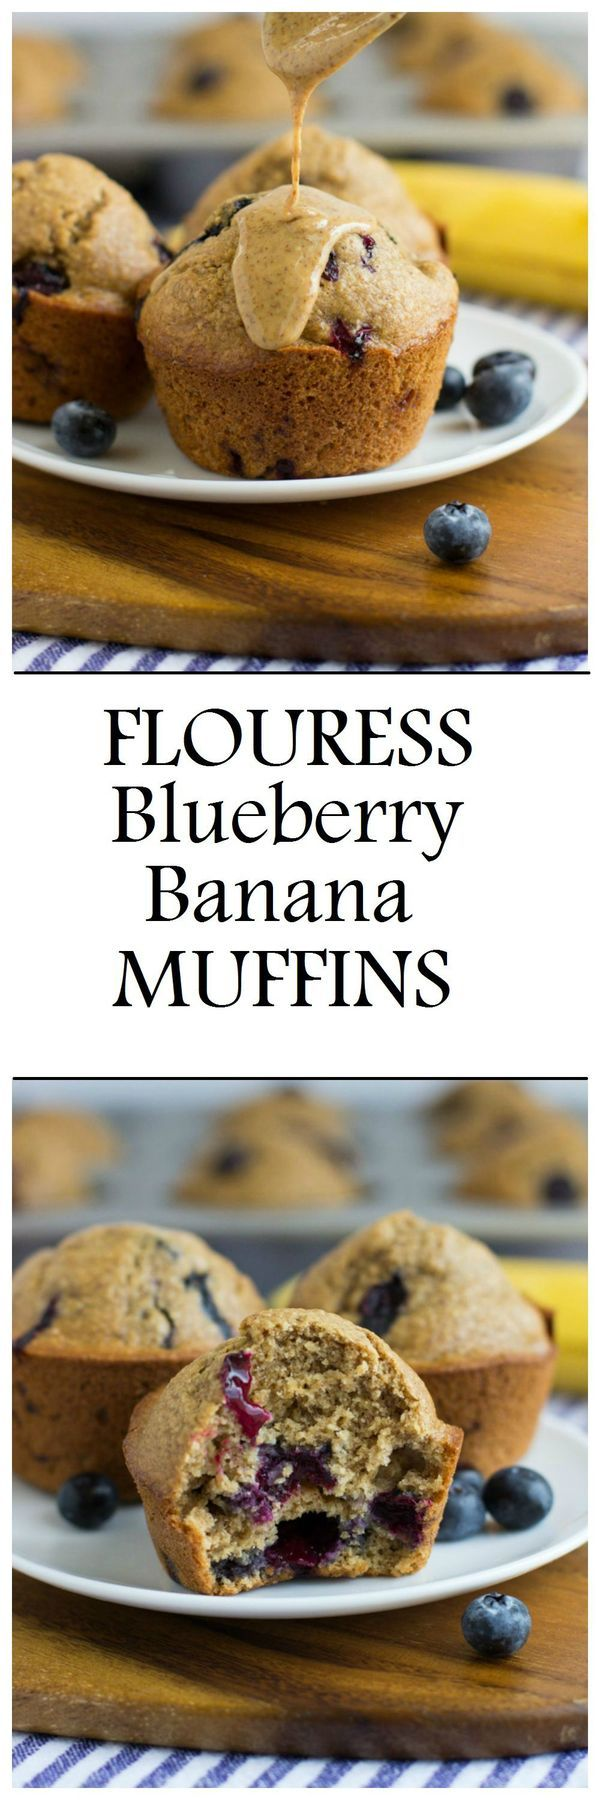 ... Muffins on Pinterest | Blueberry muffin baby, Sugar free cakes and